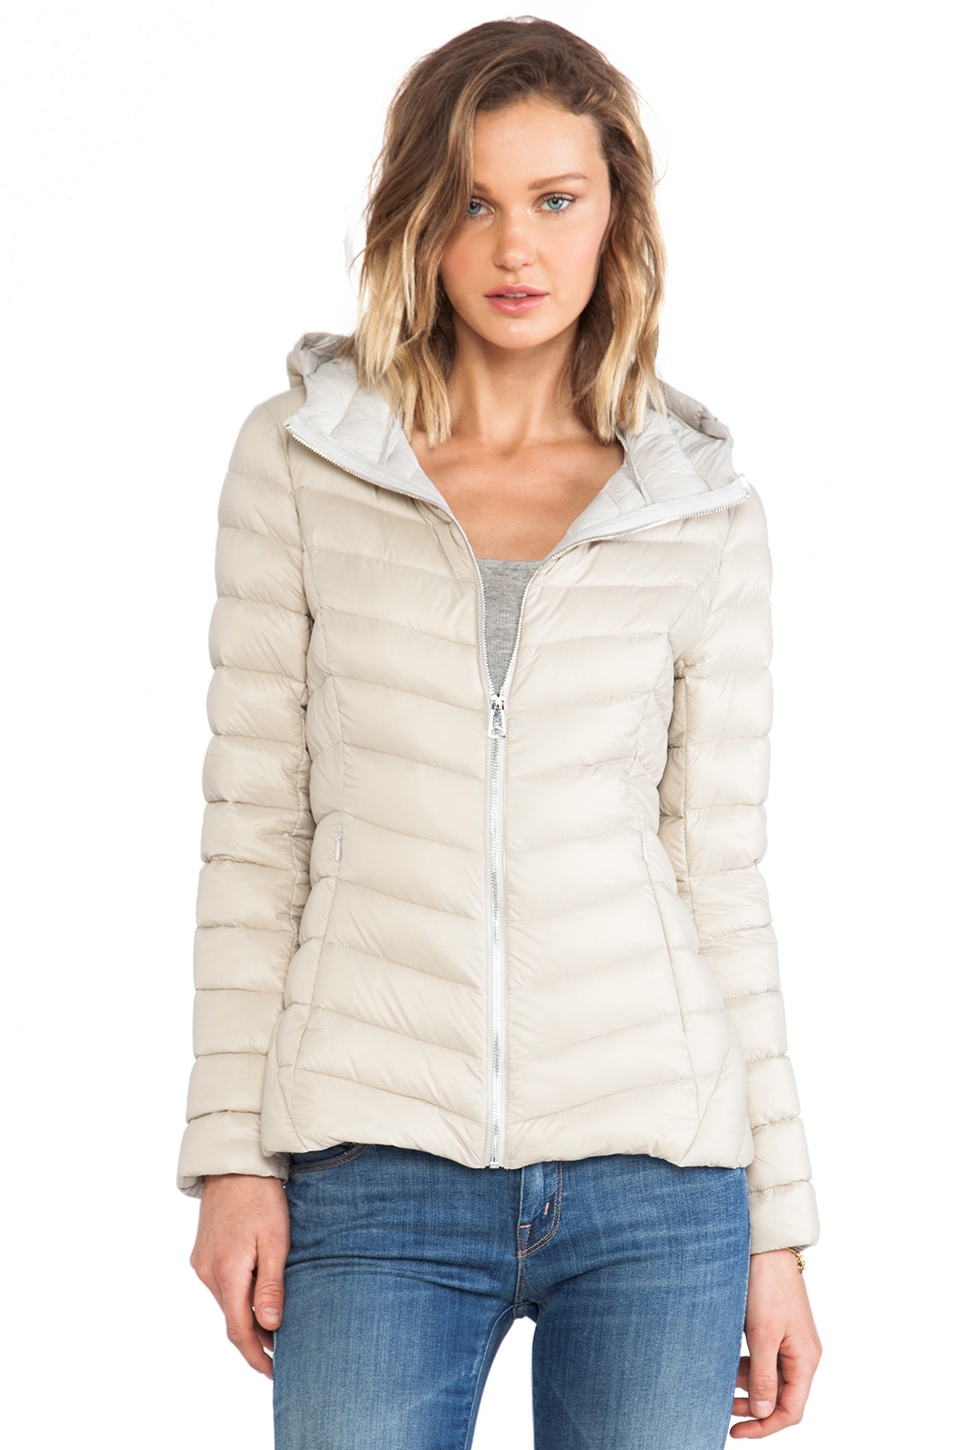 Soia & kyo Elfy Lightweight Down Jacket in Natural | Lyst